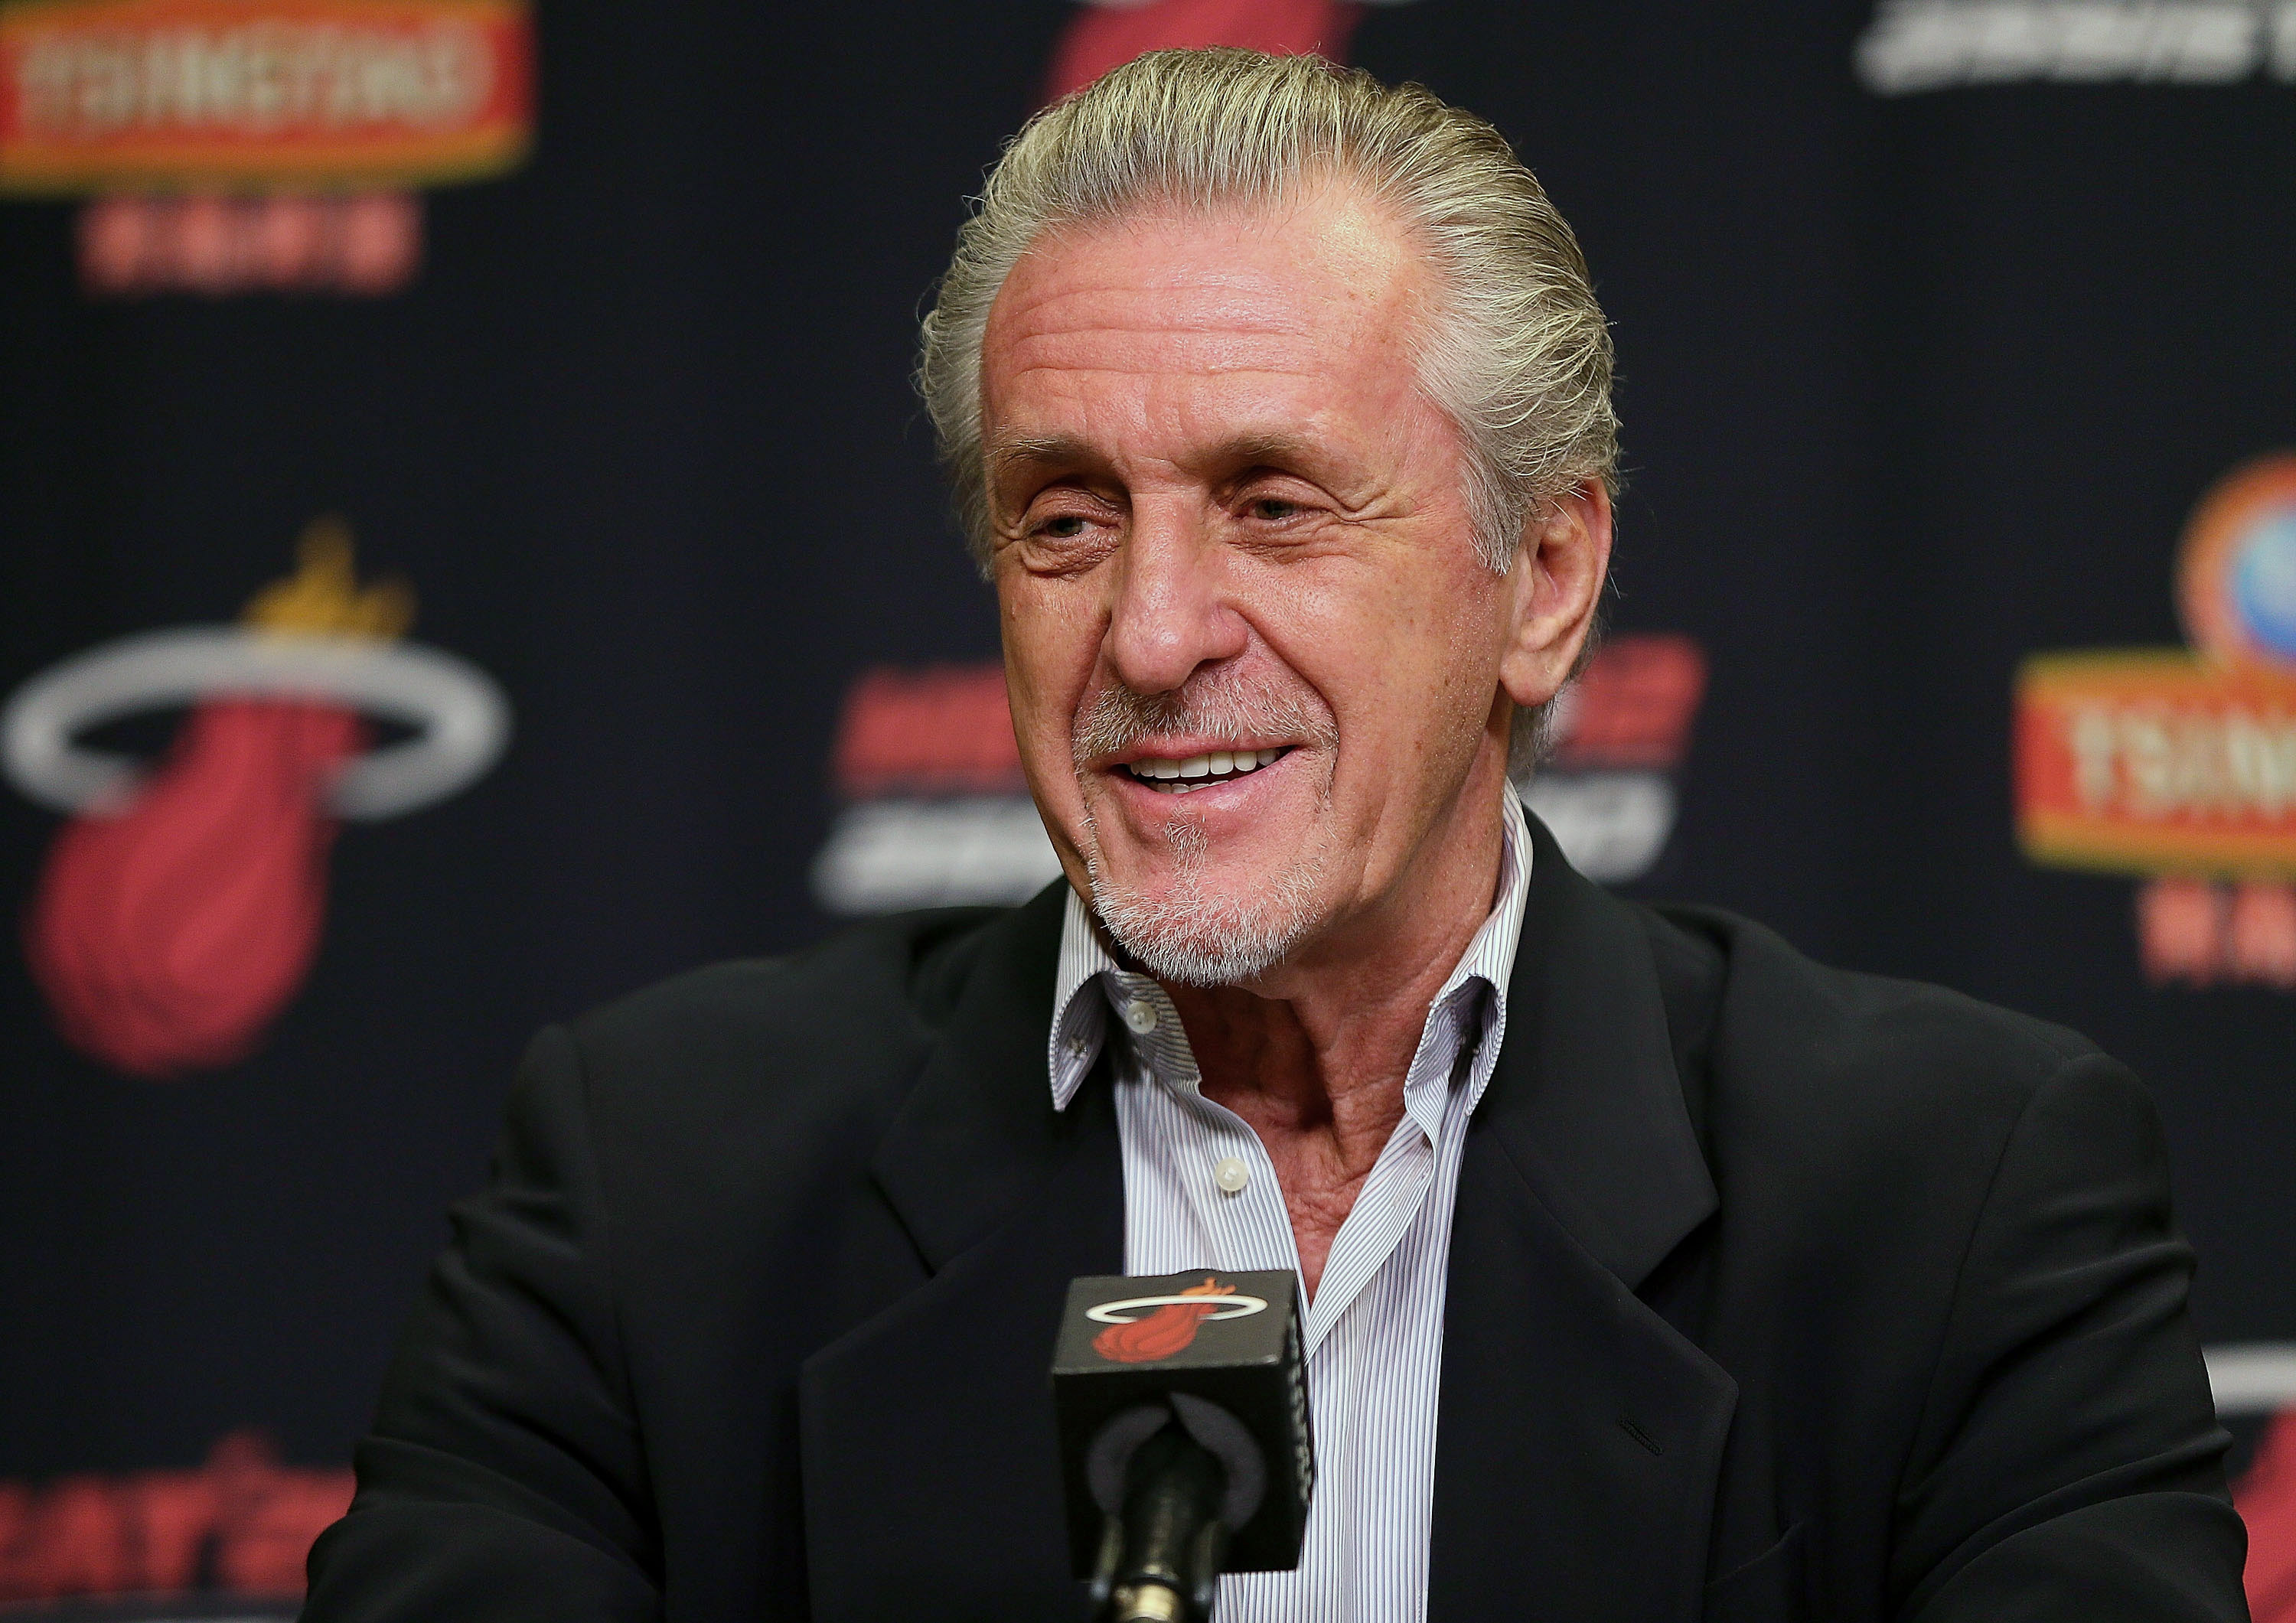 Pat Riley reportedly steered LaMarcus Aldridge to the Spurs by accident